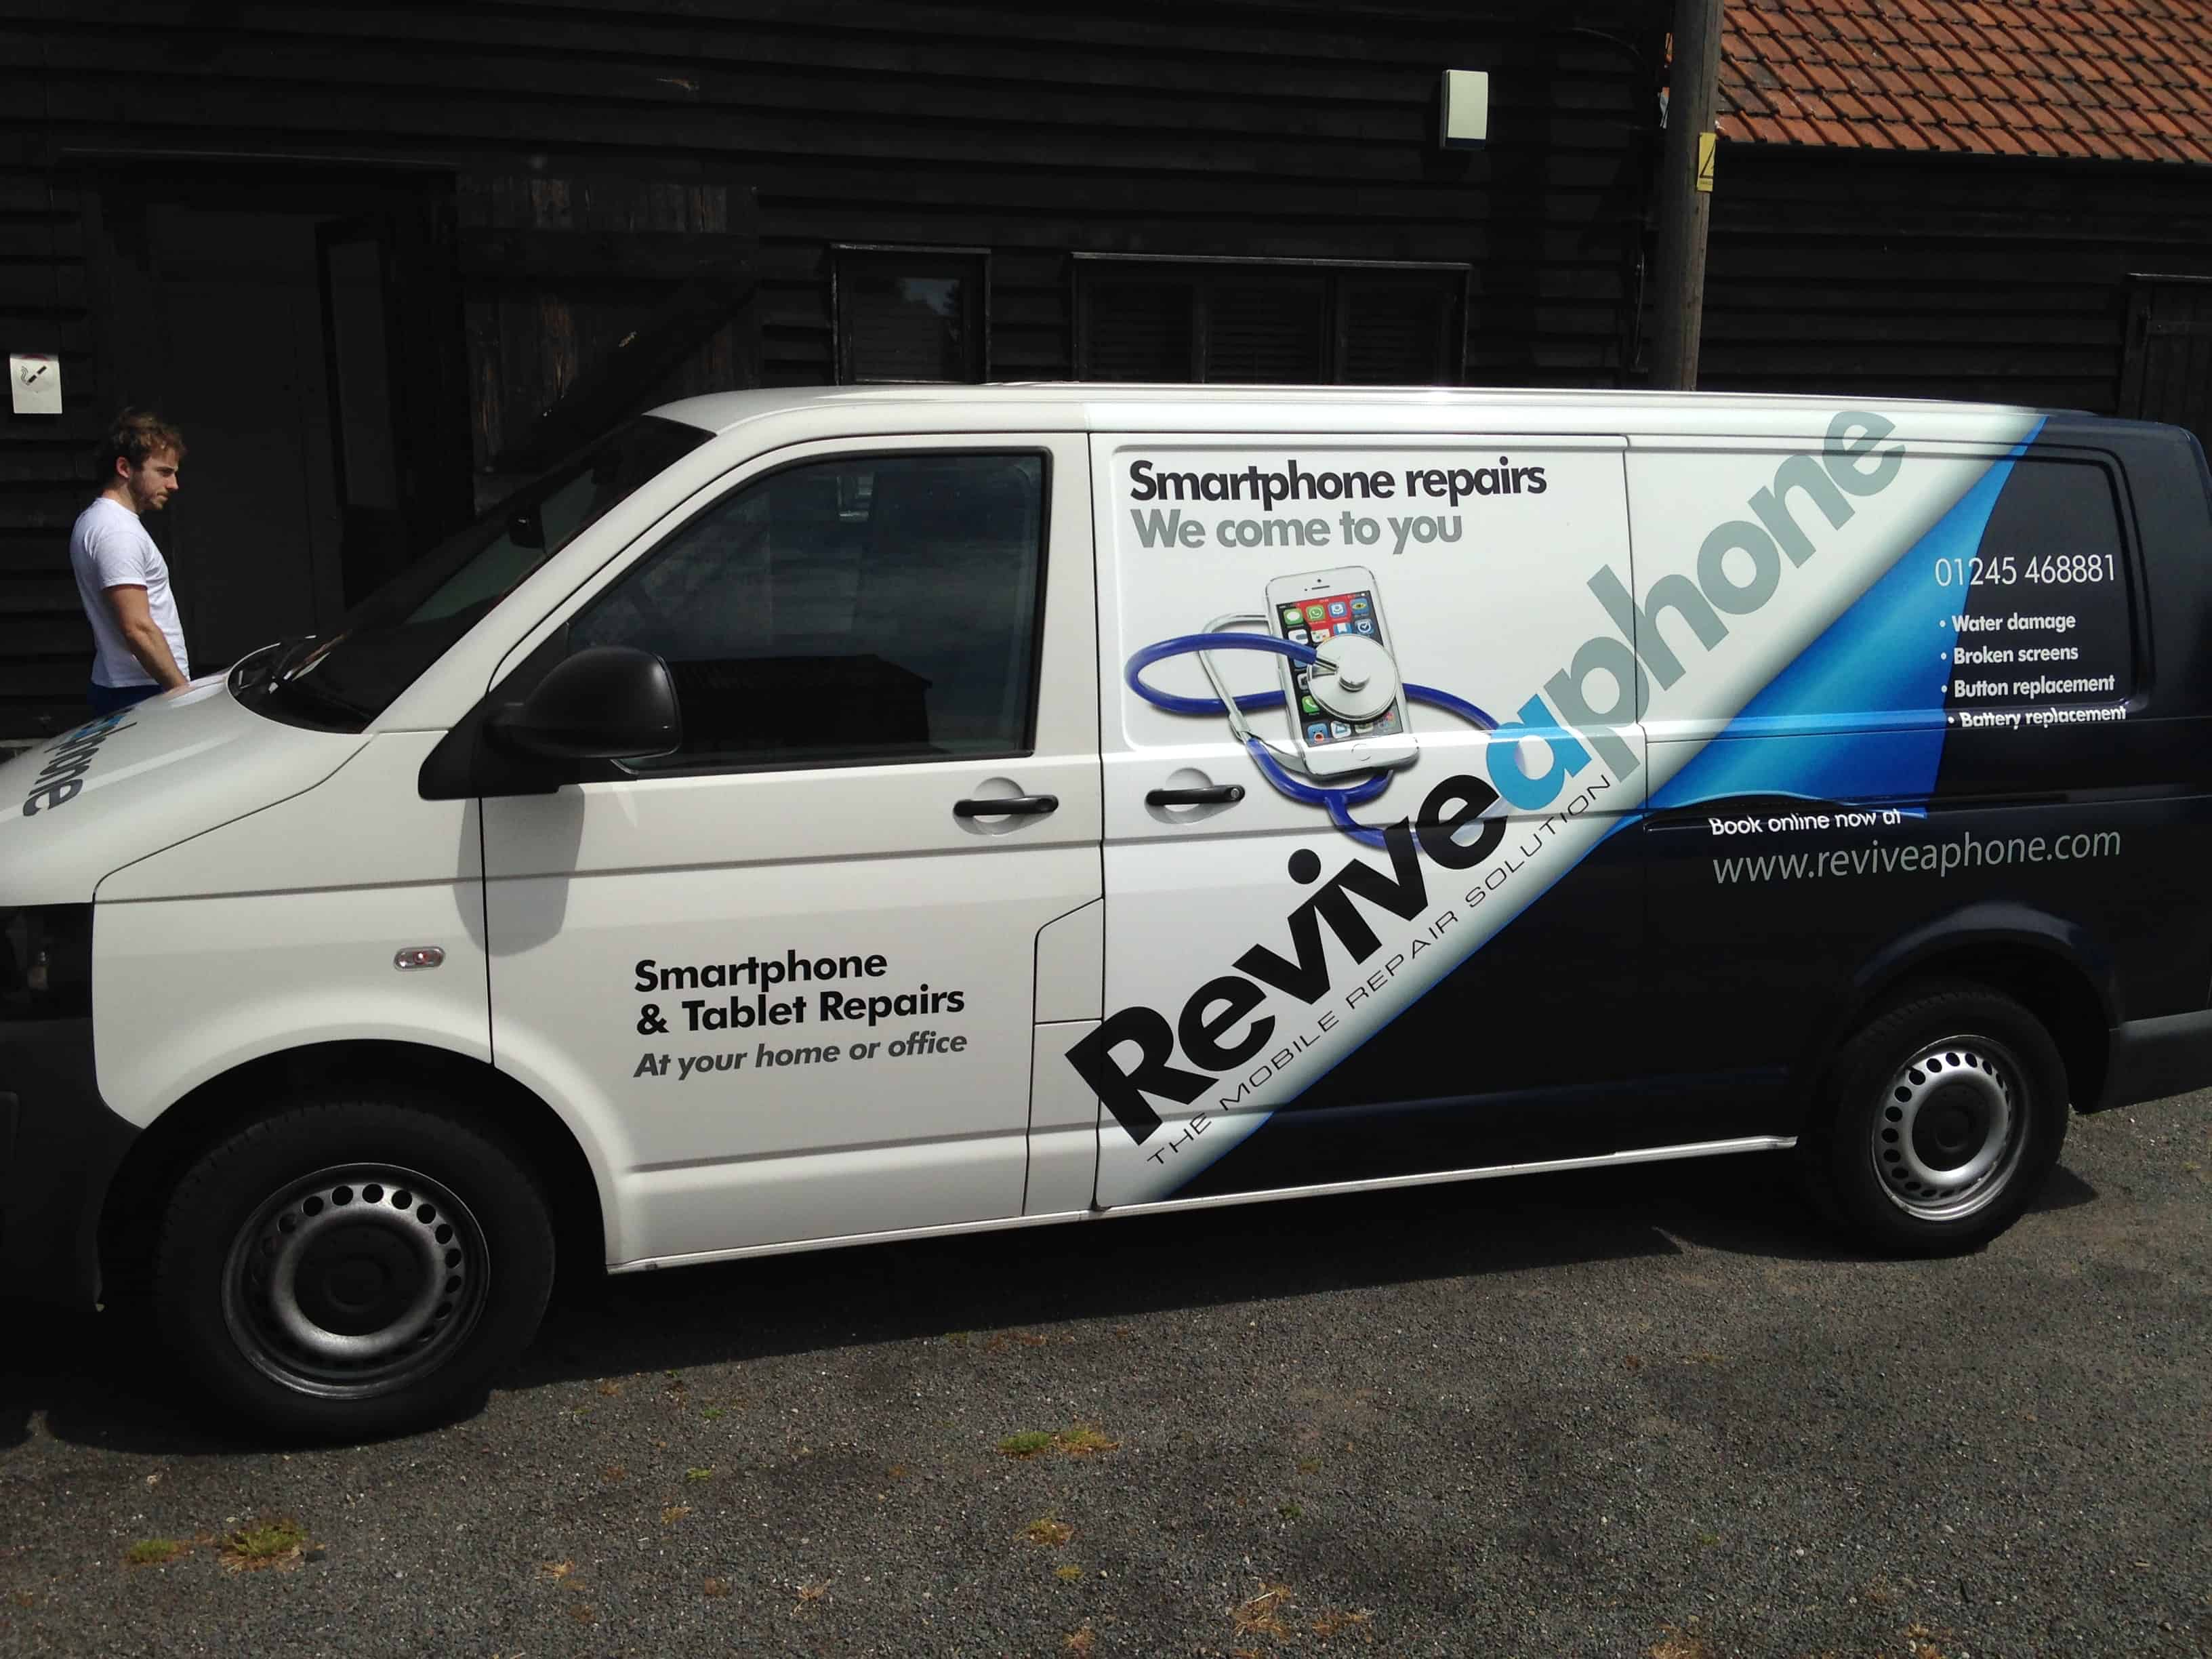 New Reviveaphone Wrap on van